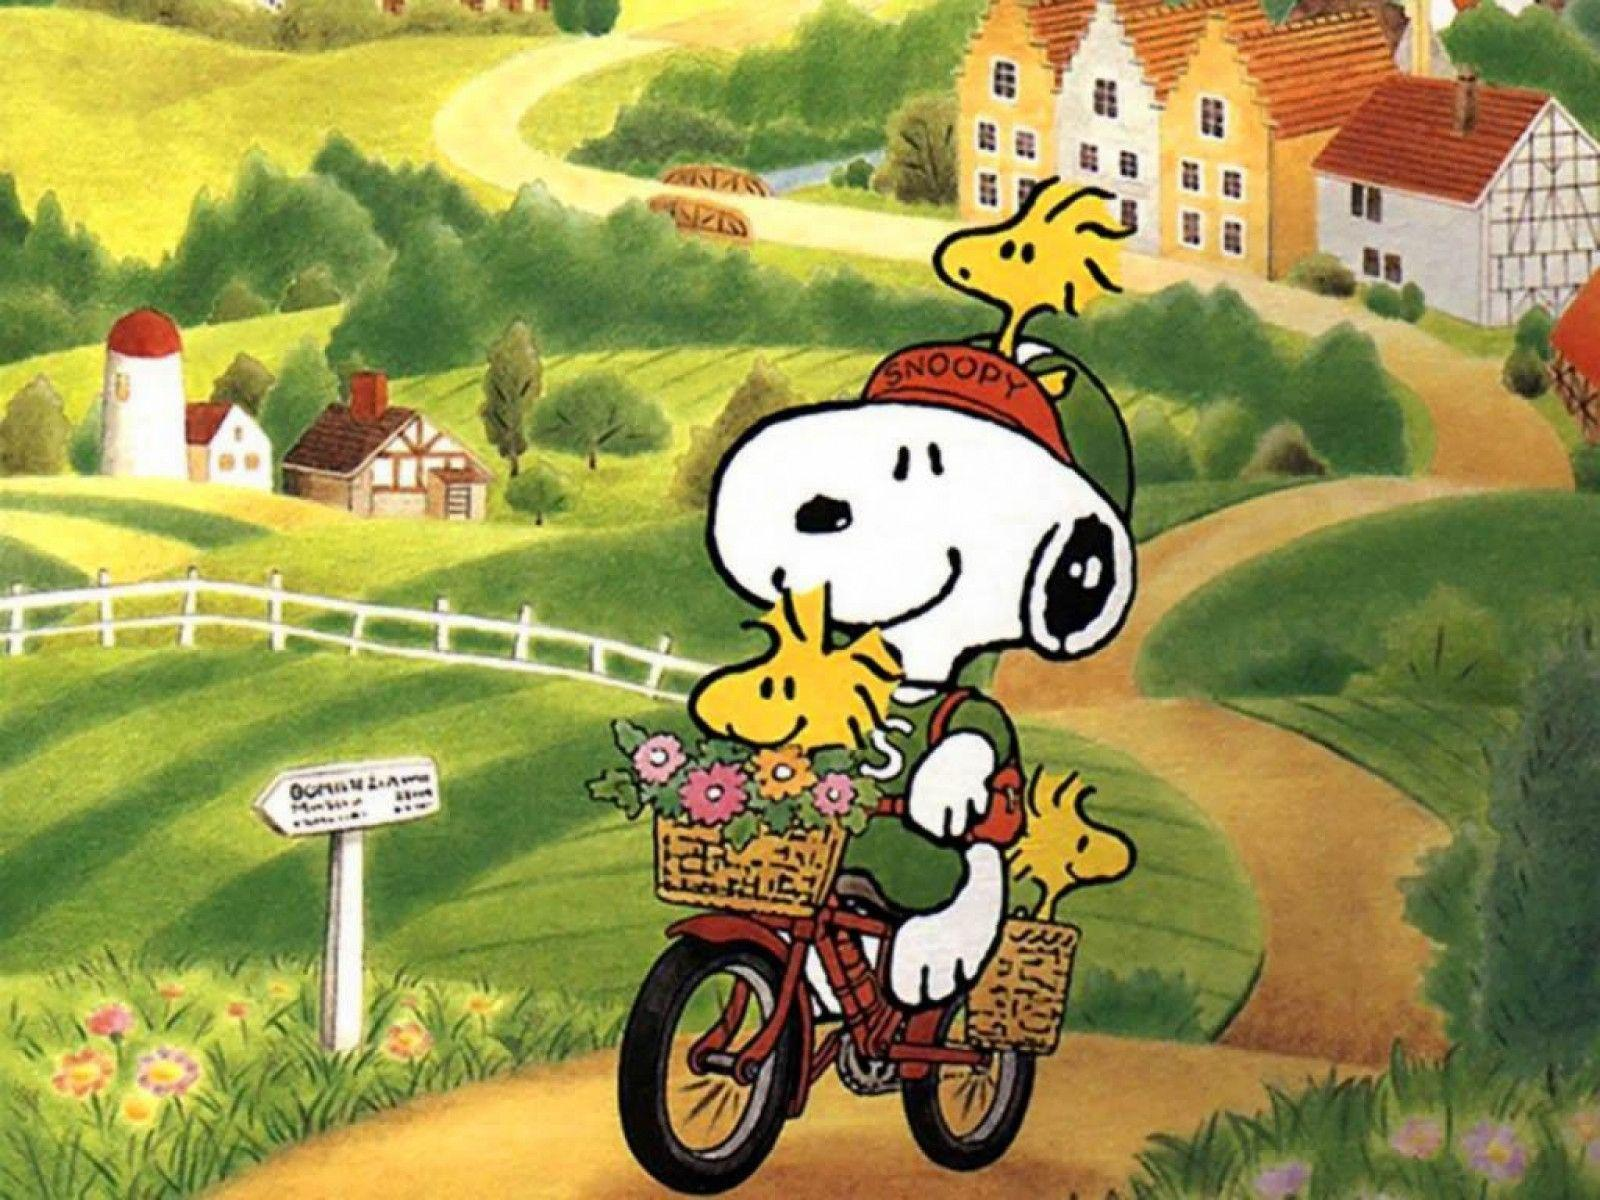 Spring Snoopy Wallpapers - Wallpaper Cave